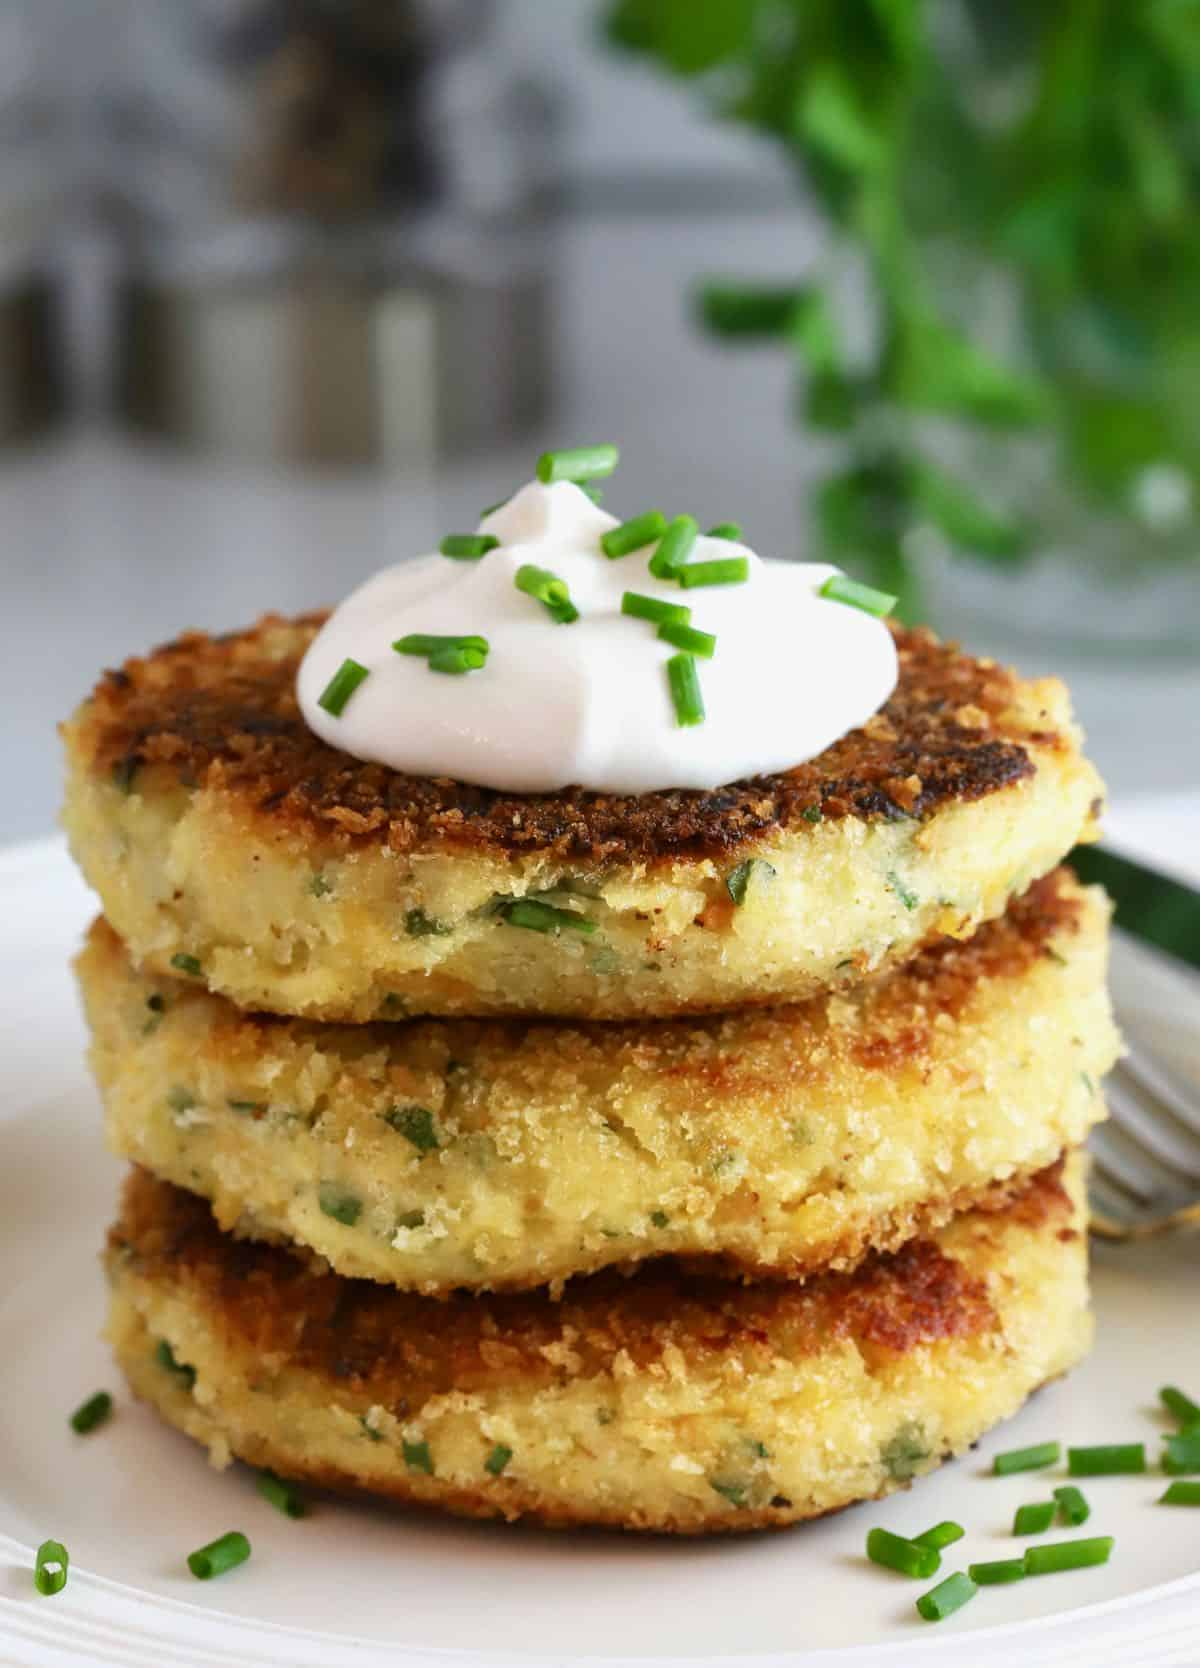 Potato fritters topped with sour cream and chives.